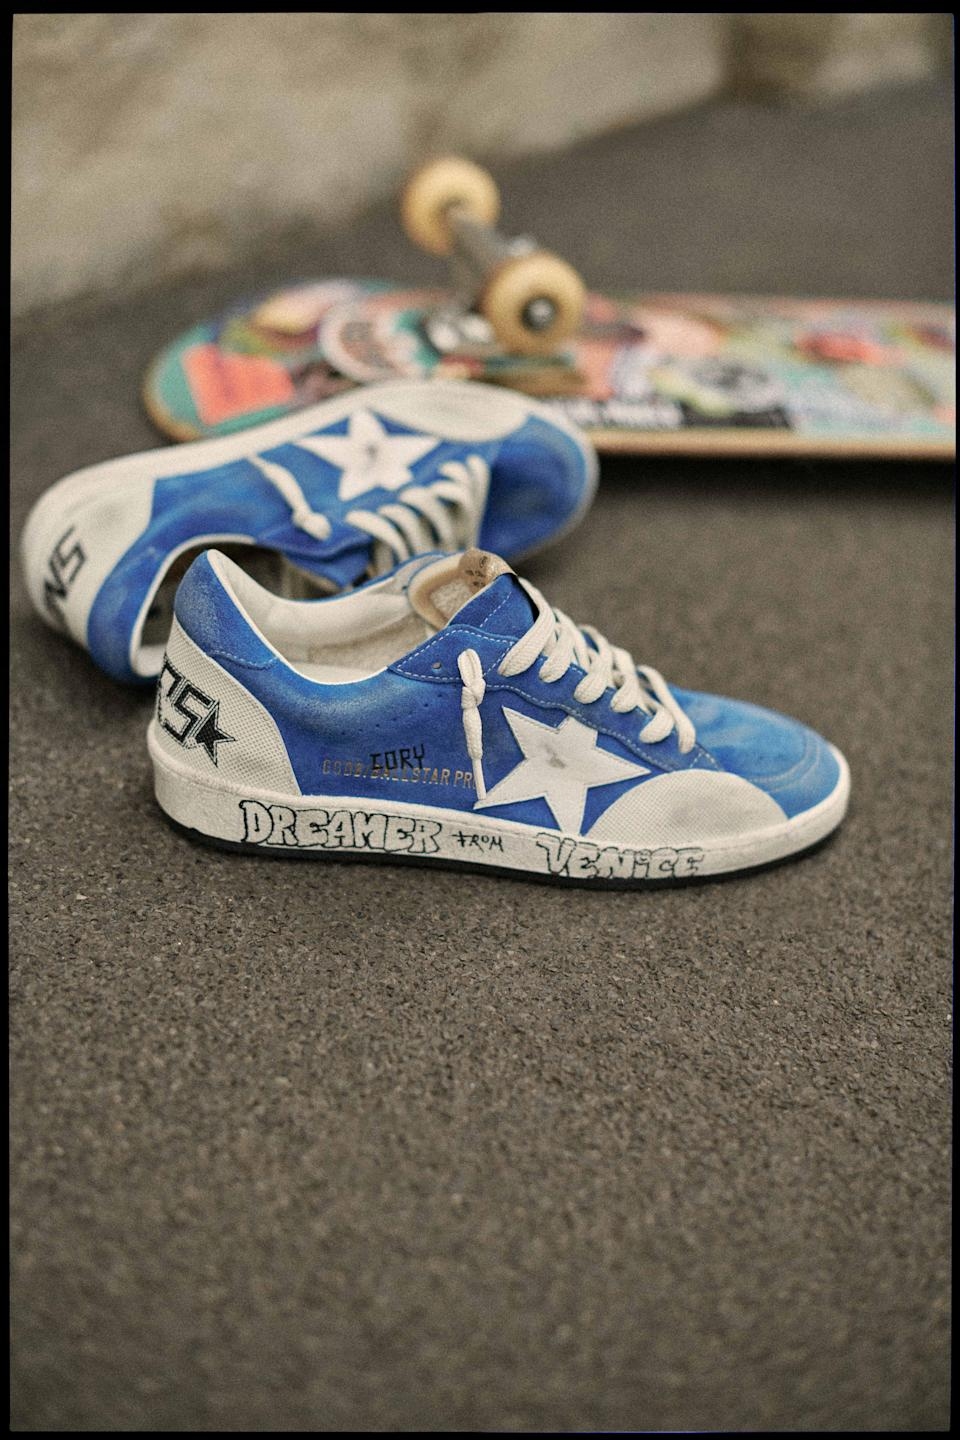 """The """"A Dreamer From Venice"""" Ball Star Pro sneaker by Golden Goose. - Credit: Courtesy of Golden Goose"""